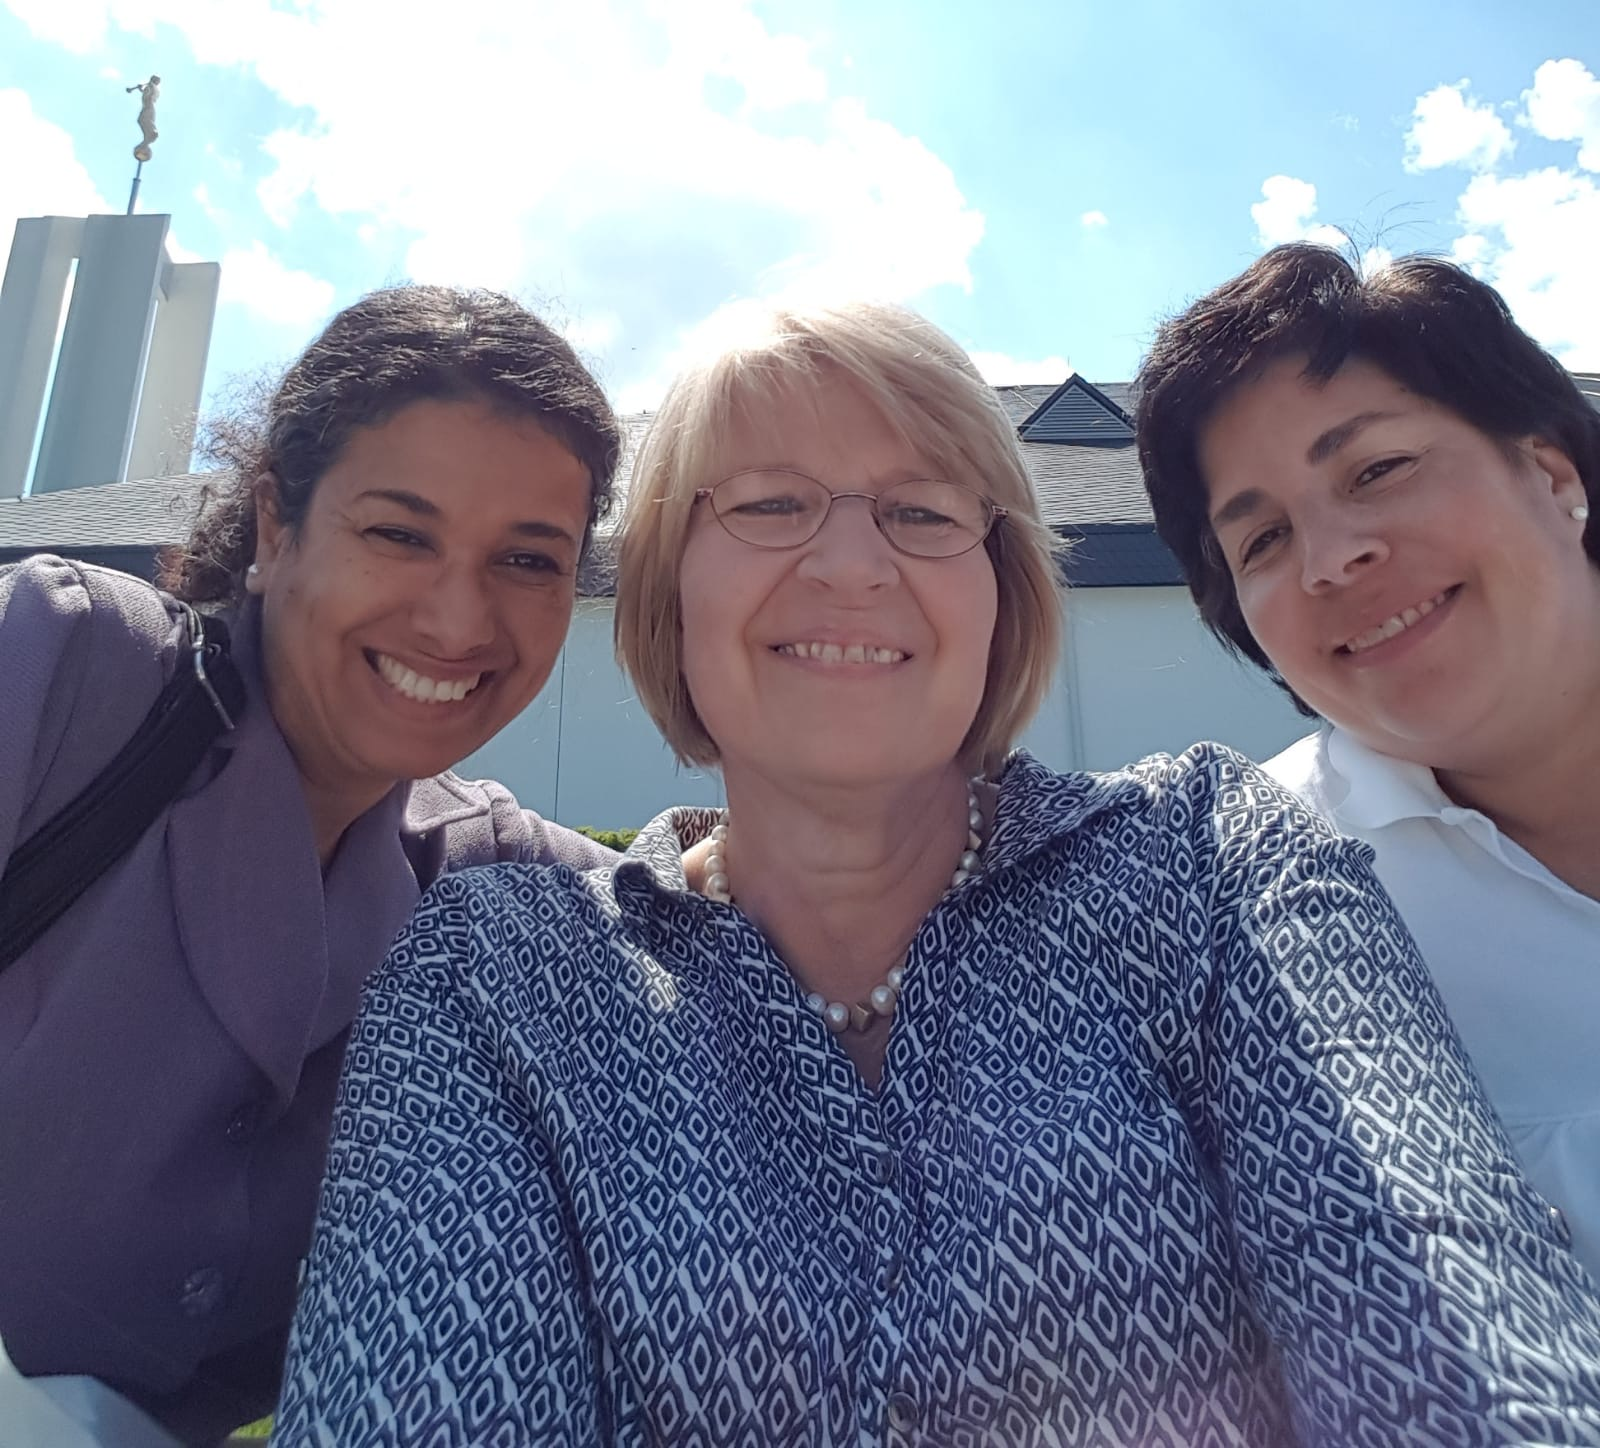 Three sisters of the Friedrichsdorf Germany Stake pause for a selfie outside the Freiberg Germany Temple during their May 2018 temple trip.